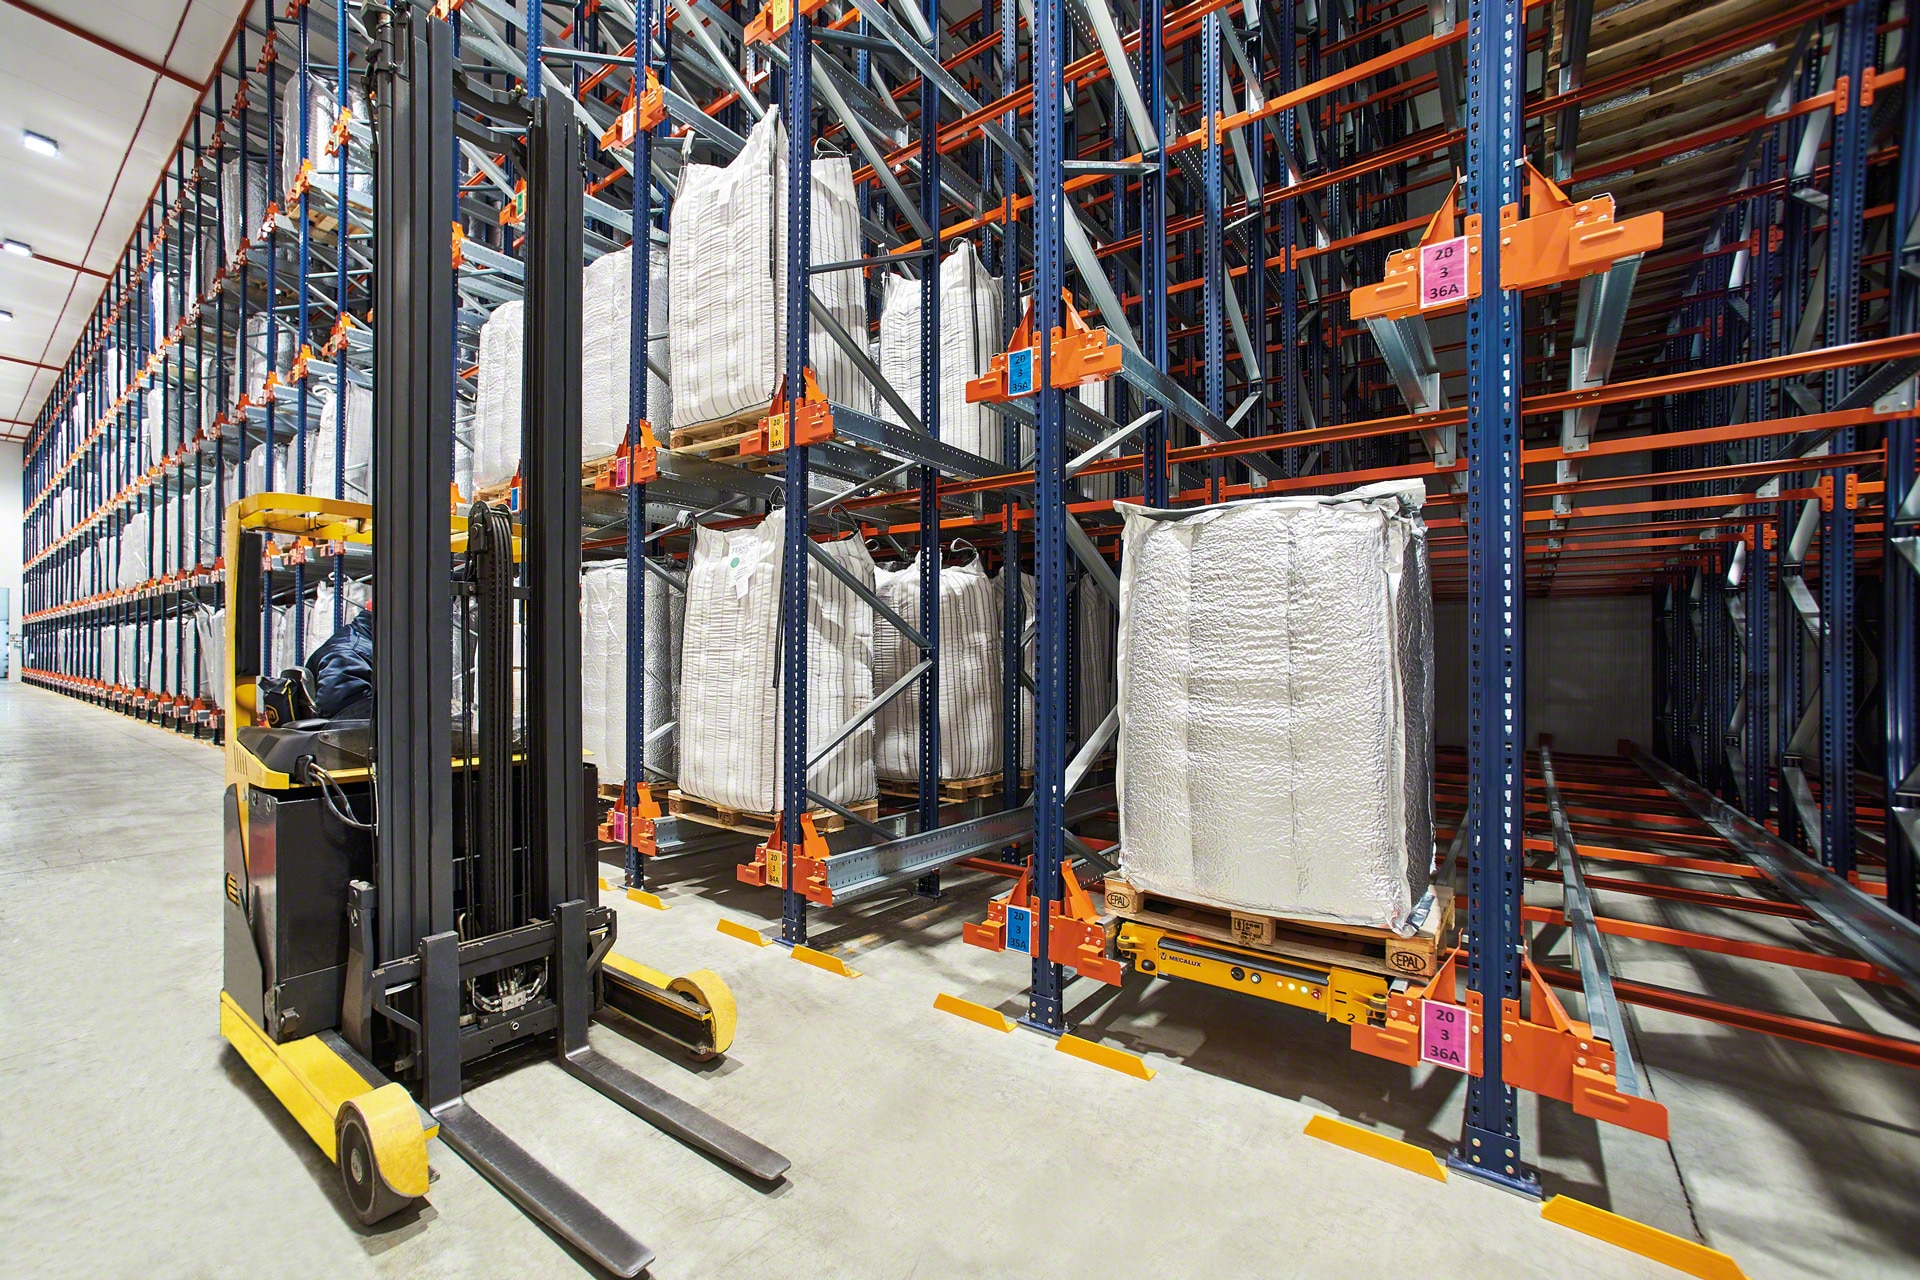 Forklift trucks can insert the electric shuttle into up to 40 meters deep racks